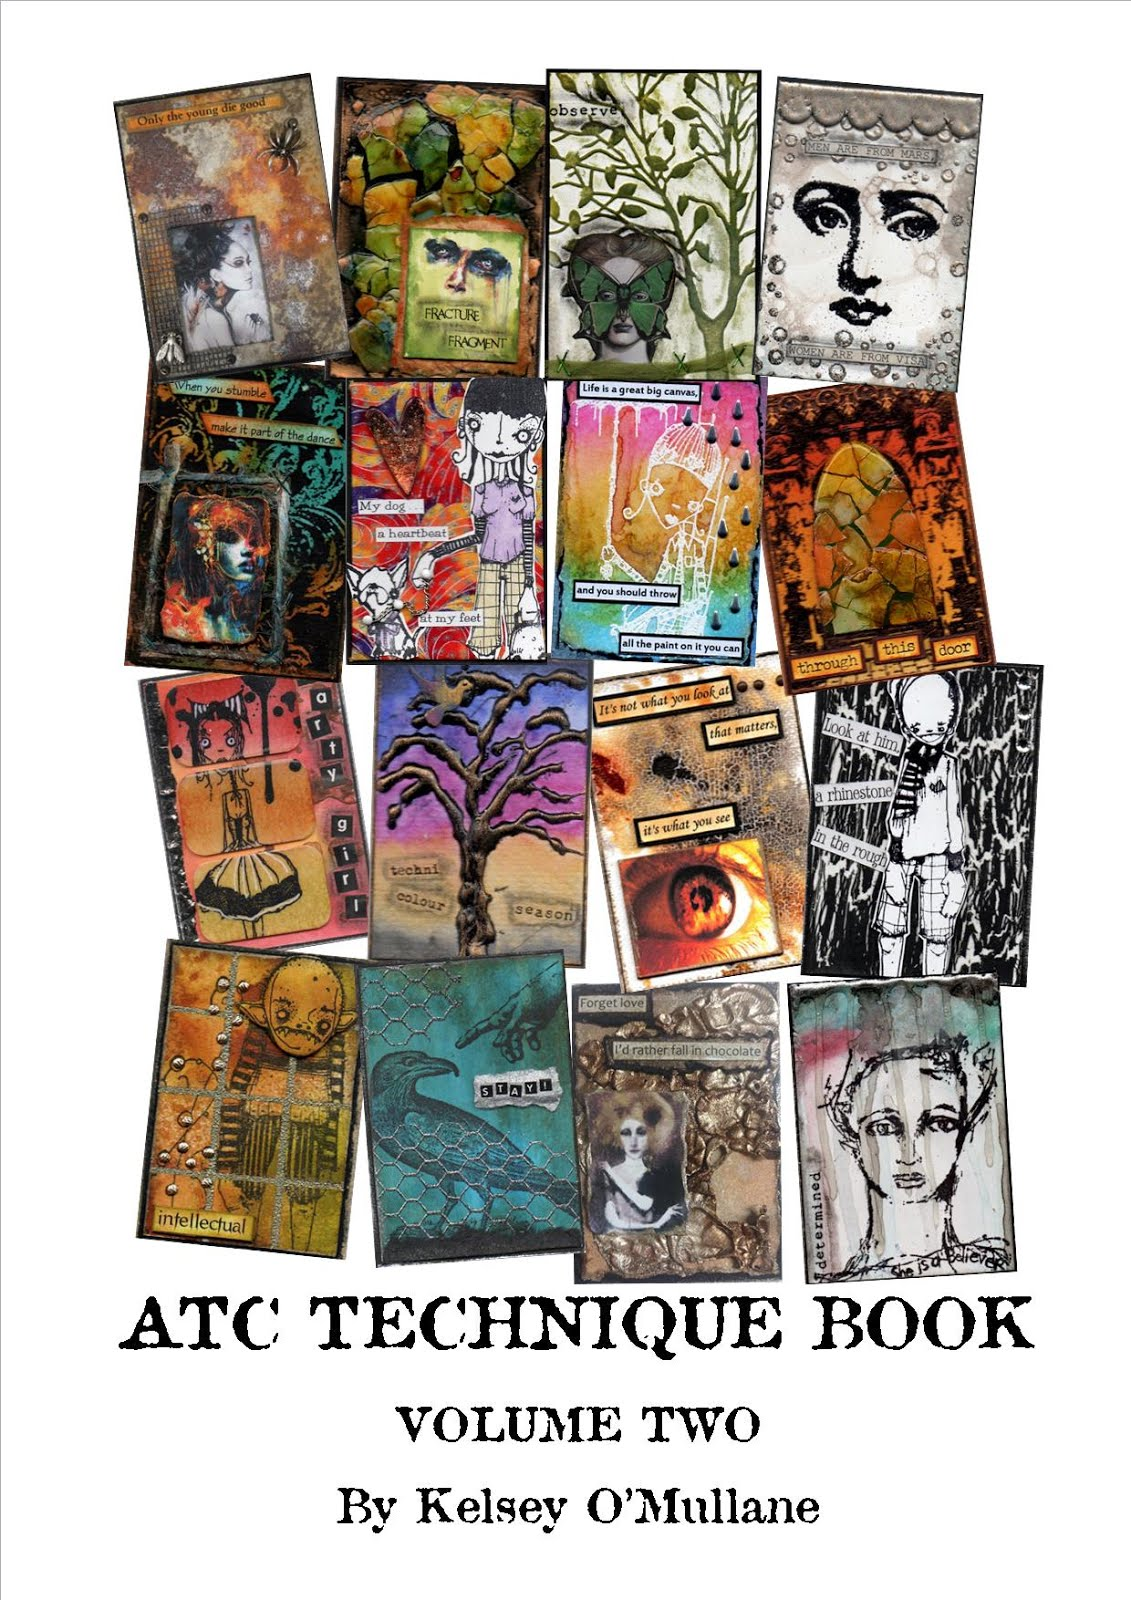 ATC TECHNIQUE BOOK VOLUME II FOR SALE